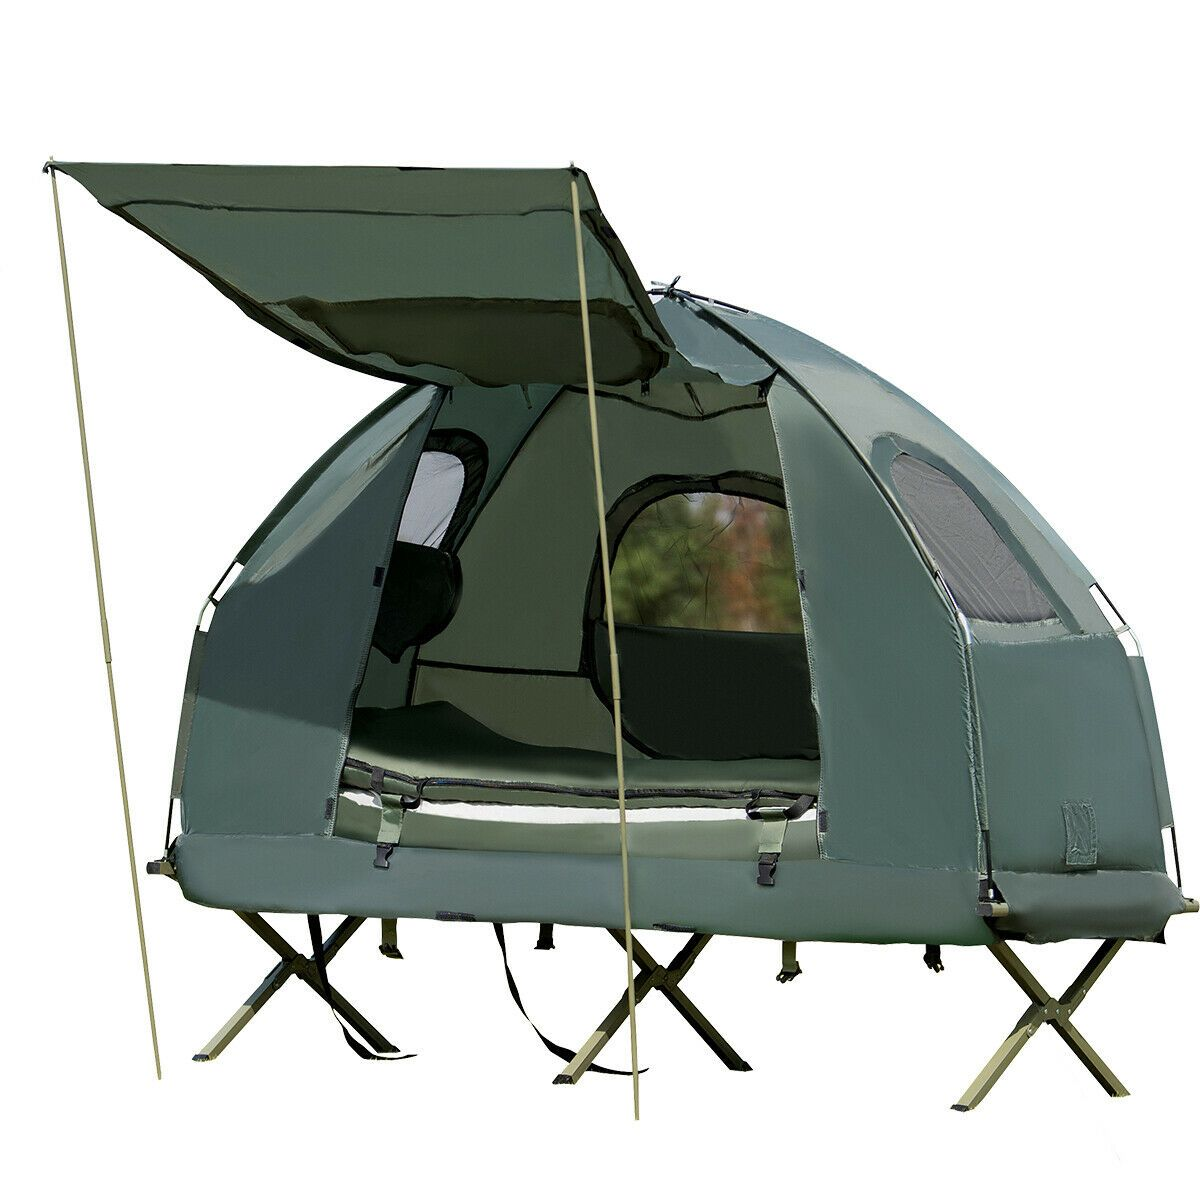 1 Person Compact Portable Pop Up Tent Camping Cot W Air Mattress Cool Tents Tent Cot Camping Bed